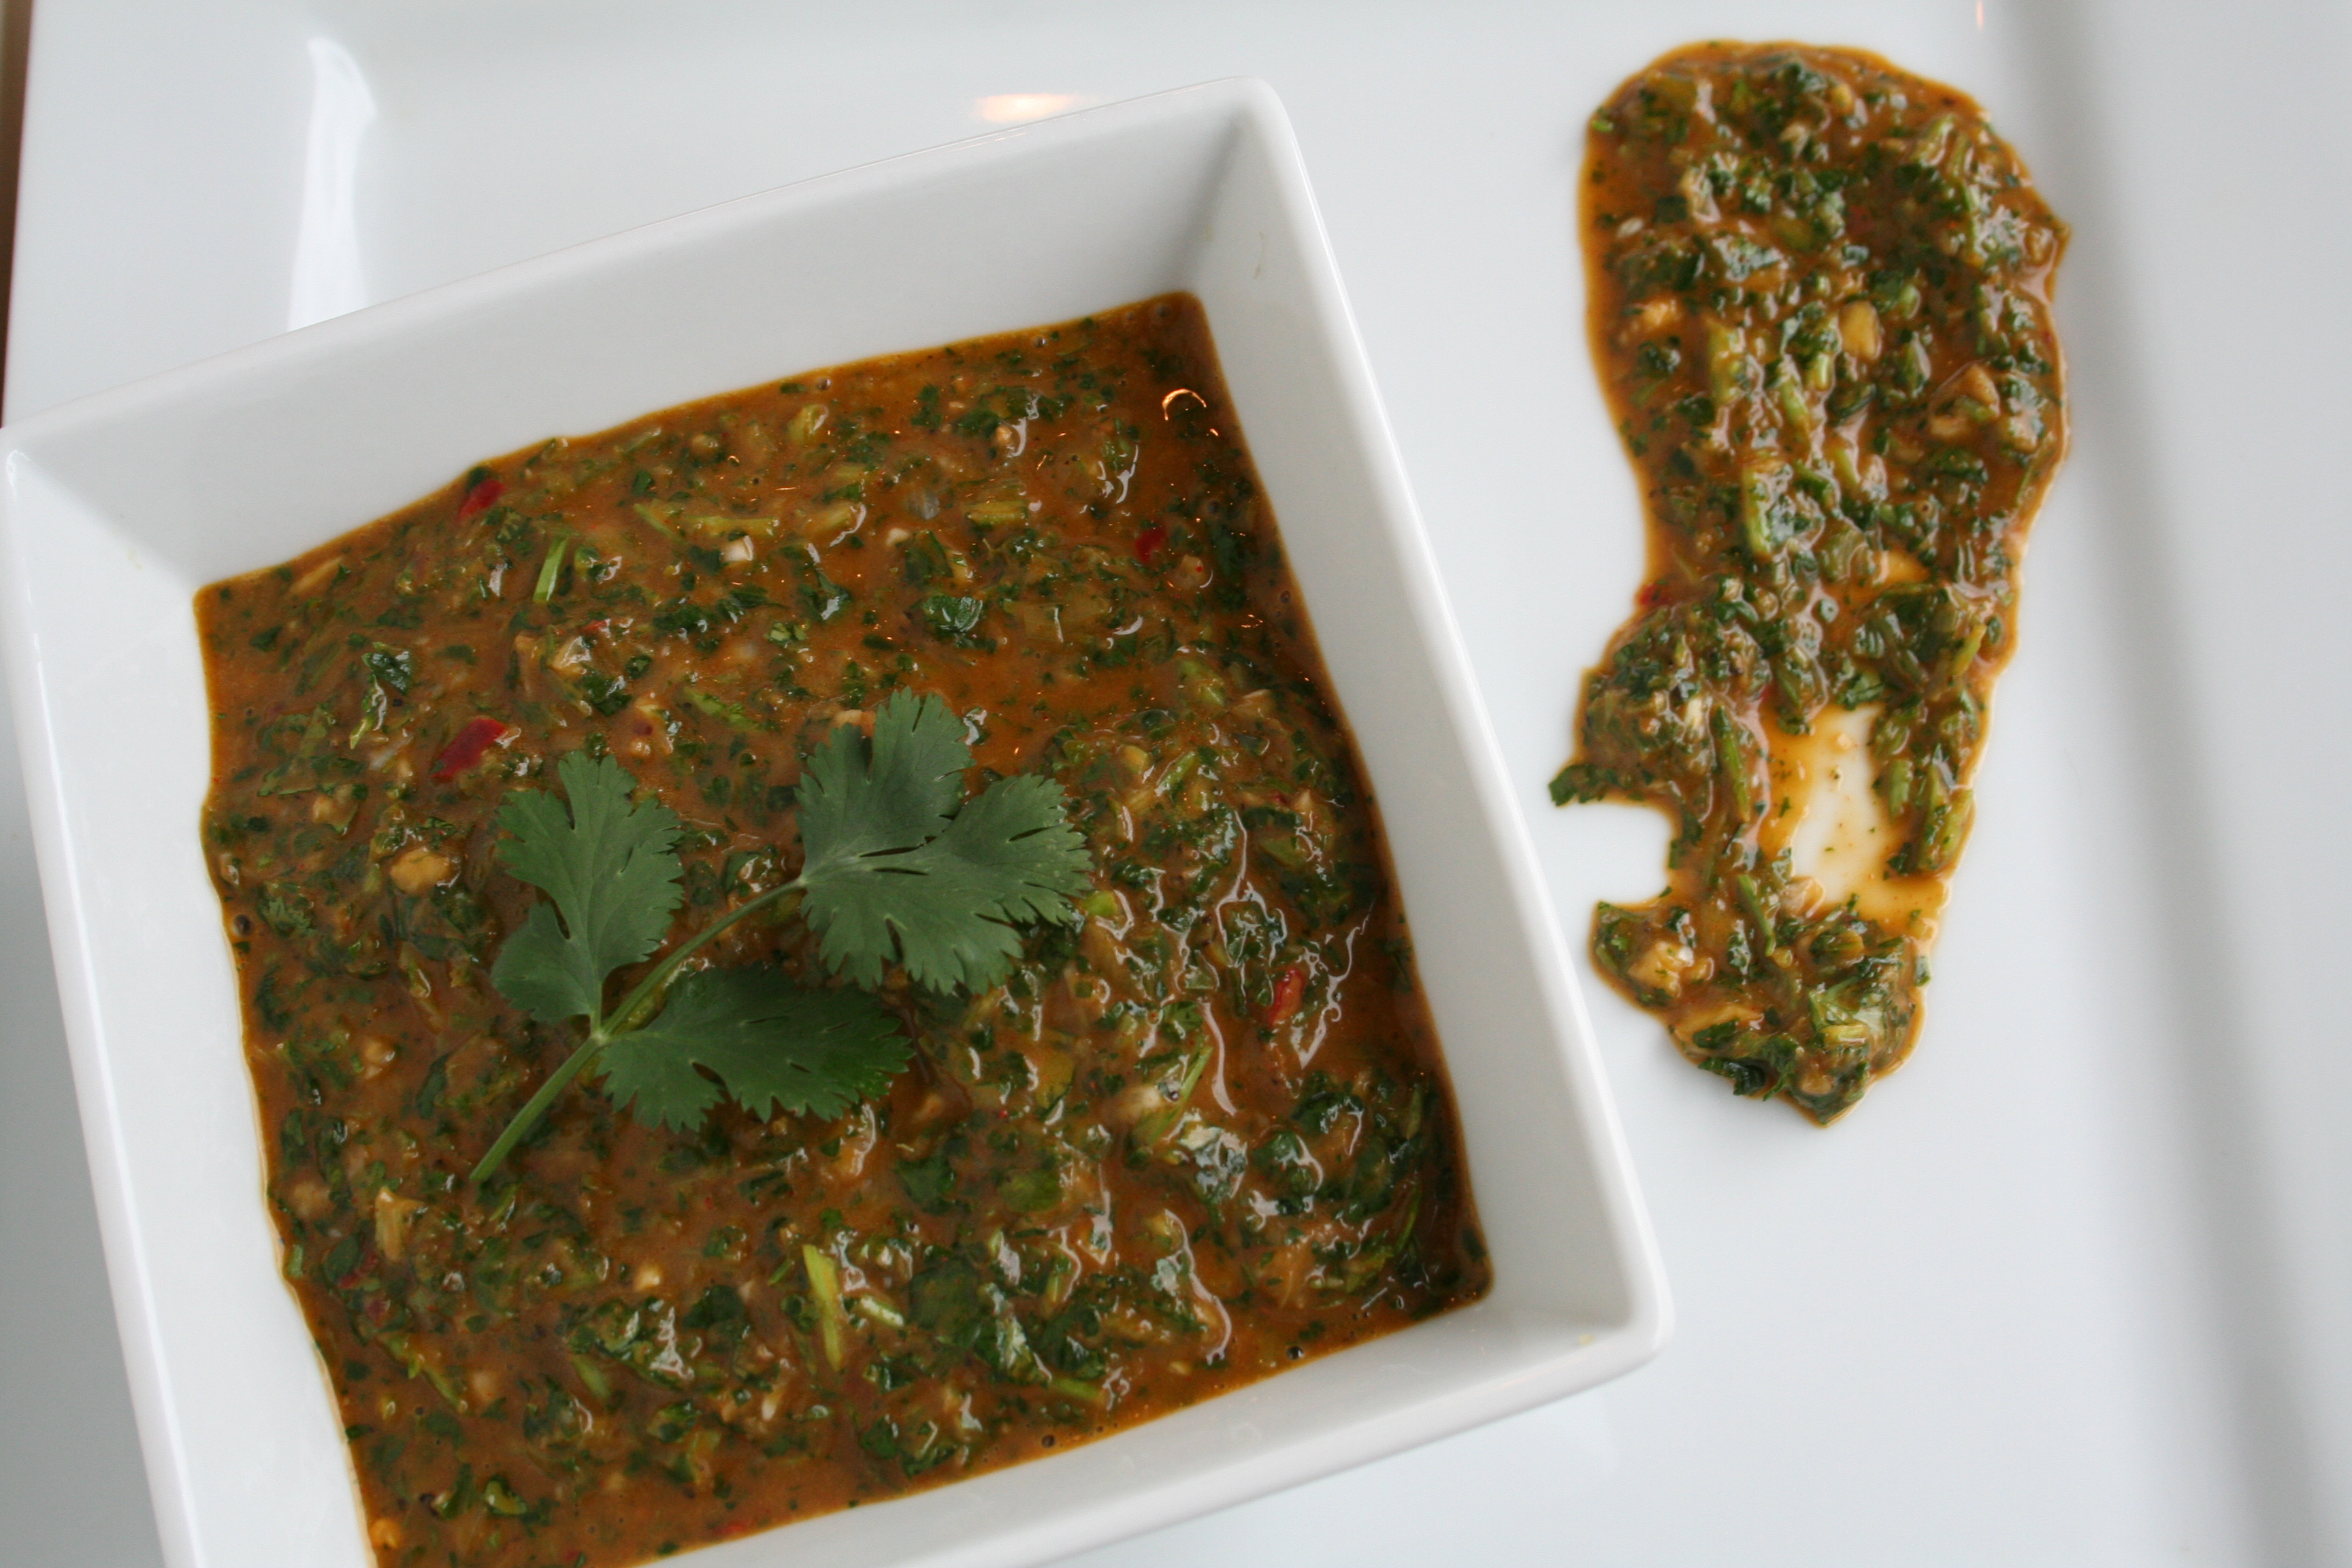 Grilled Salmon with Red Chimichurri